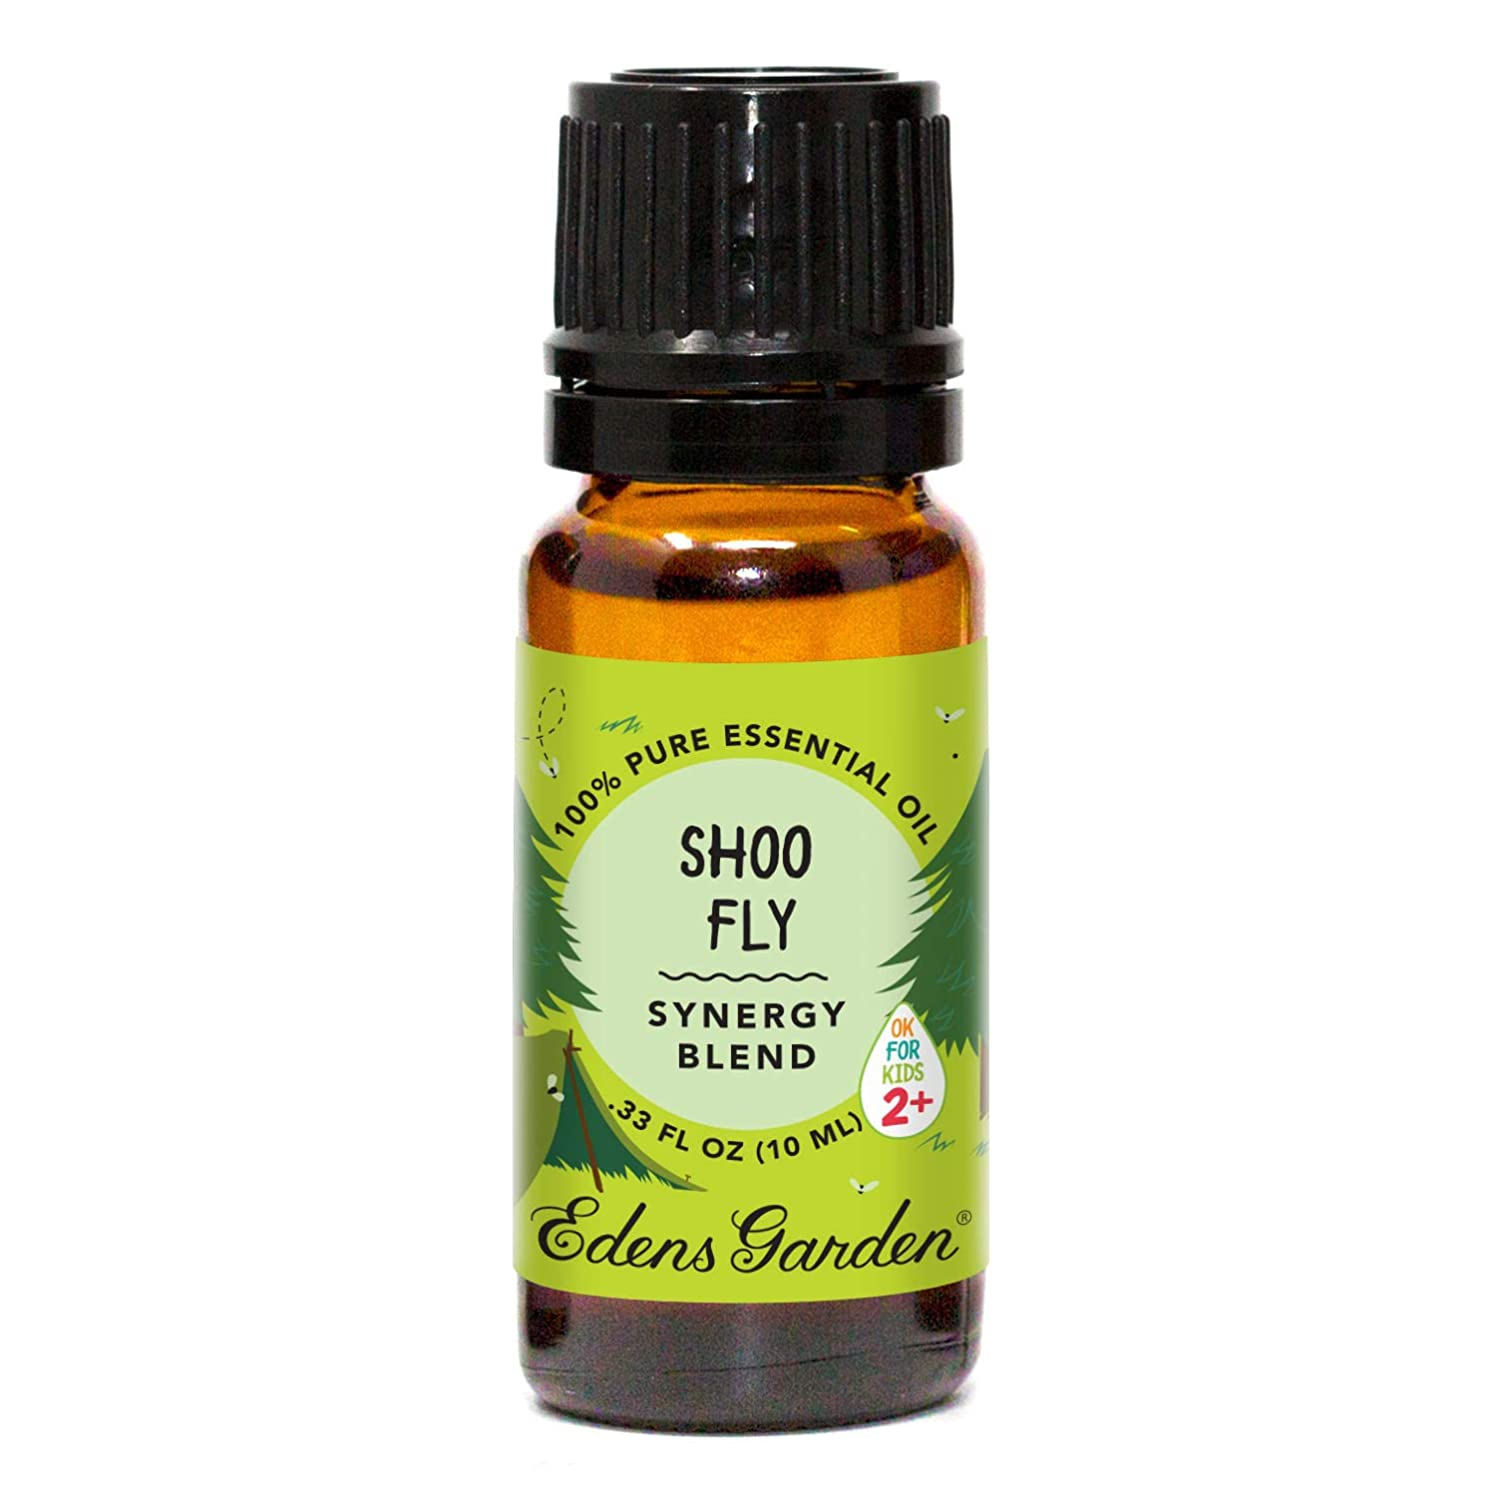 "Edens Garden Shoo Fly""OK For Kids"" Essential Oil Synergy Blend, 100% Pure Therapeutic Grade (Child Safe 2+, Detox & Stress) 10 ml"